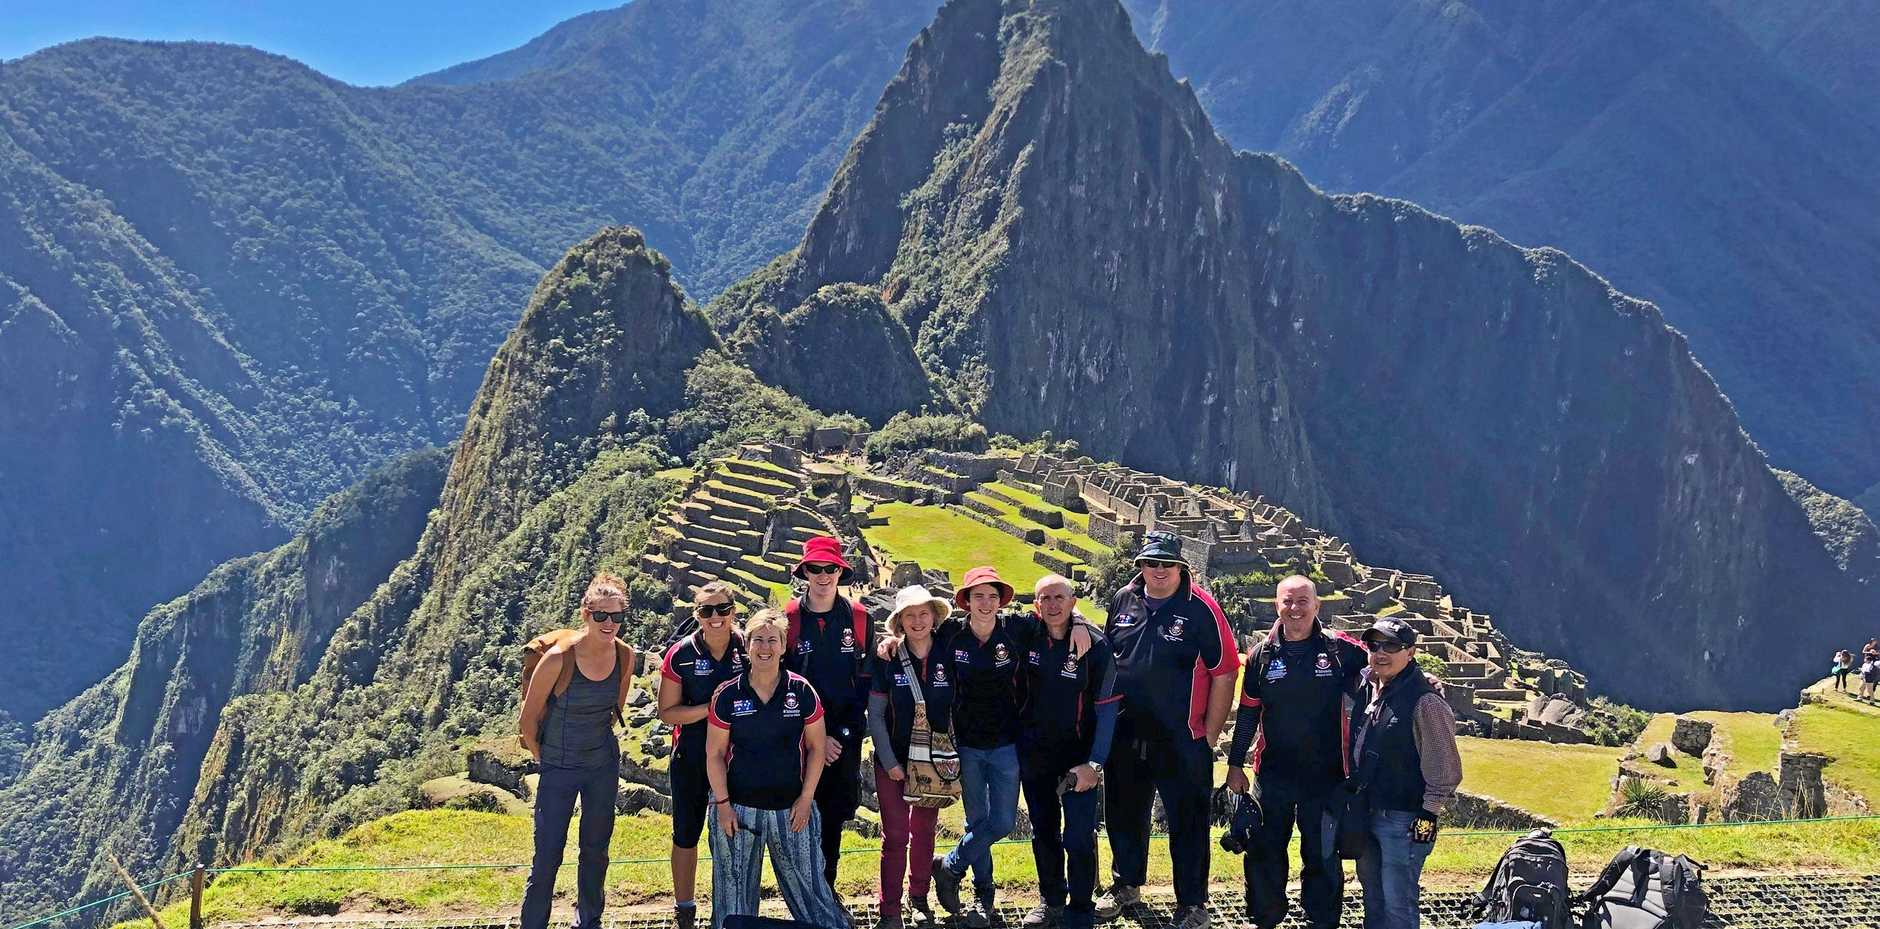 IN THE ANDES: Tour guide Kelci Pike, Whitsunday Anglican School students Rebecca Matijevic, Petrina Matijevic, Jack Hickinbotham, Yvette Iturbe, Lachlan Iturbe, Robert Iturbe, Adam Shield, head of junior school Mick Martin and tour guide Jay.